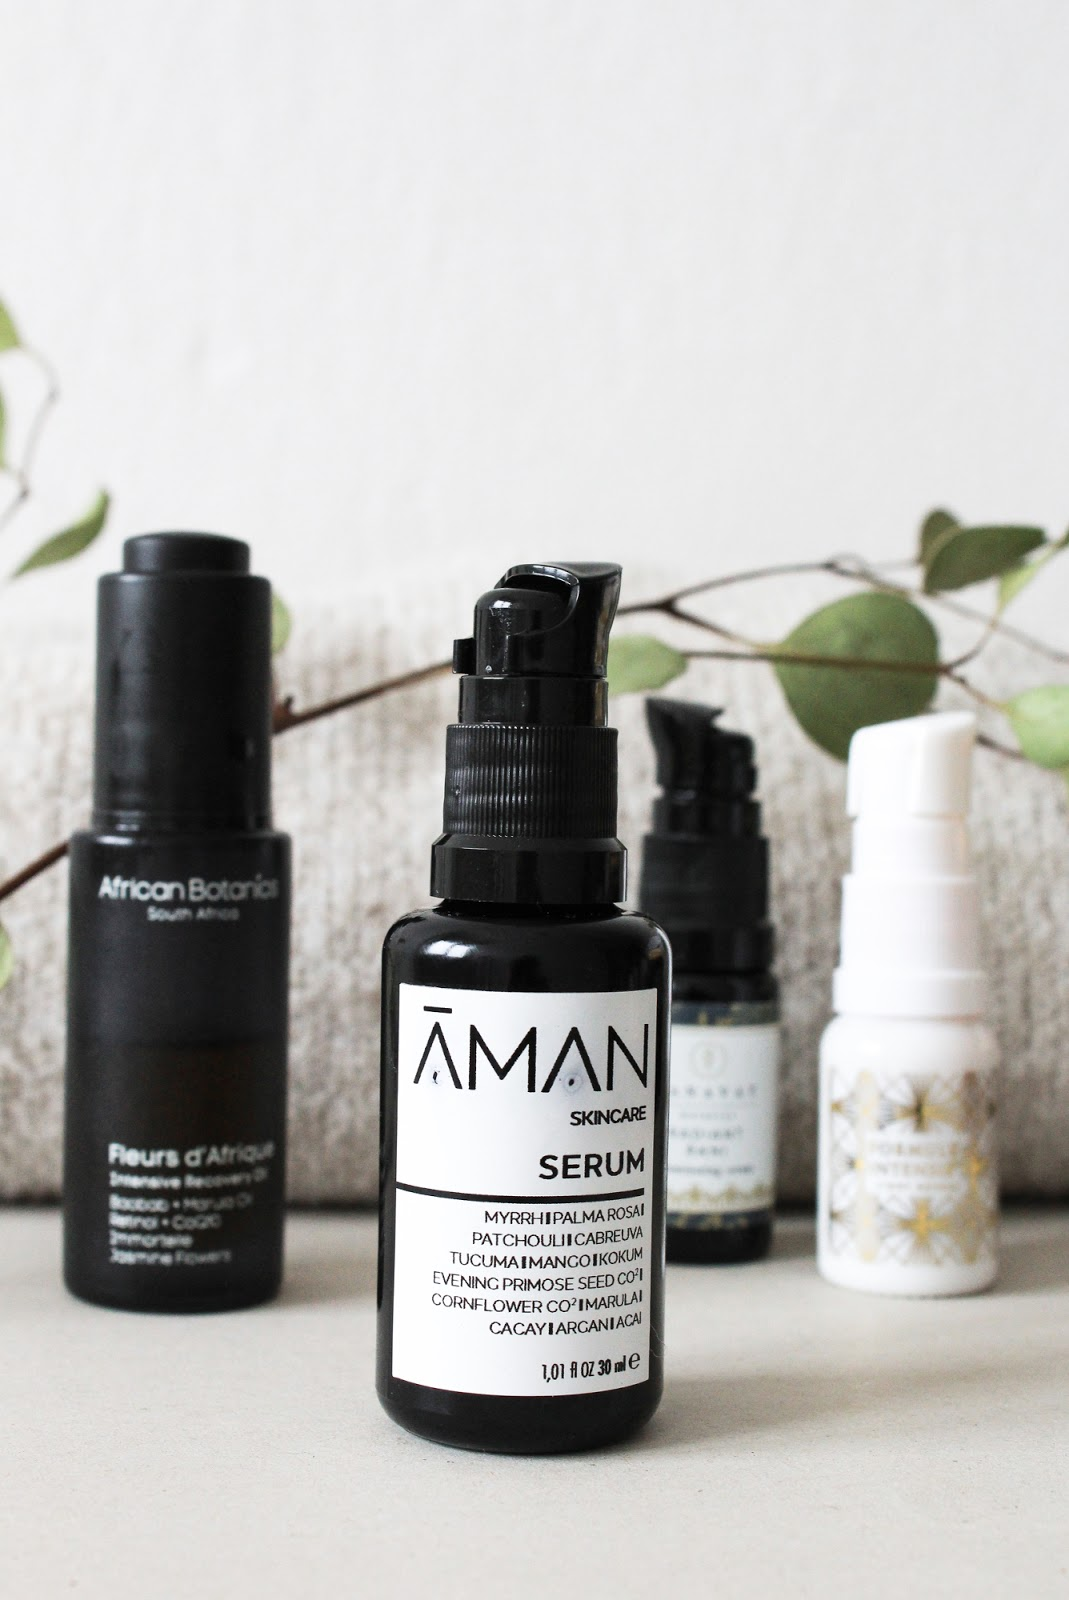 Emanufaktur Aman Skincare Serum Made in Italy Organic Vegan